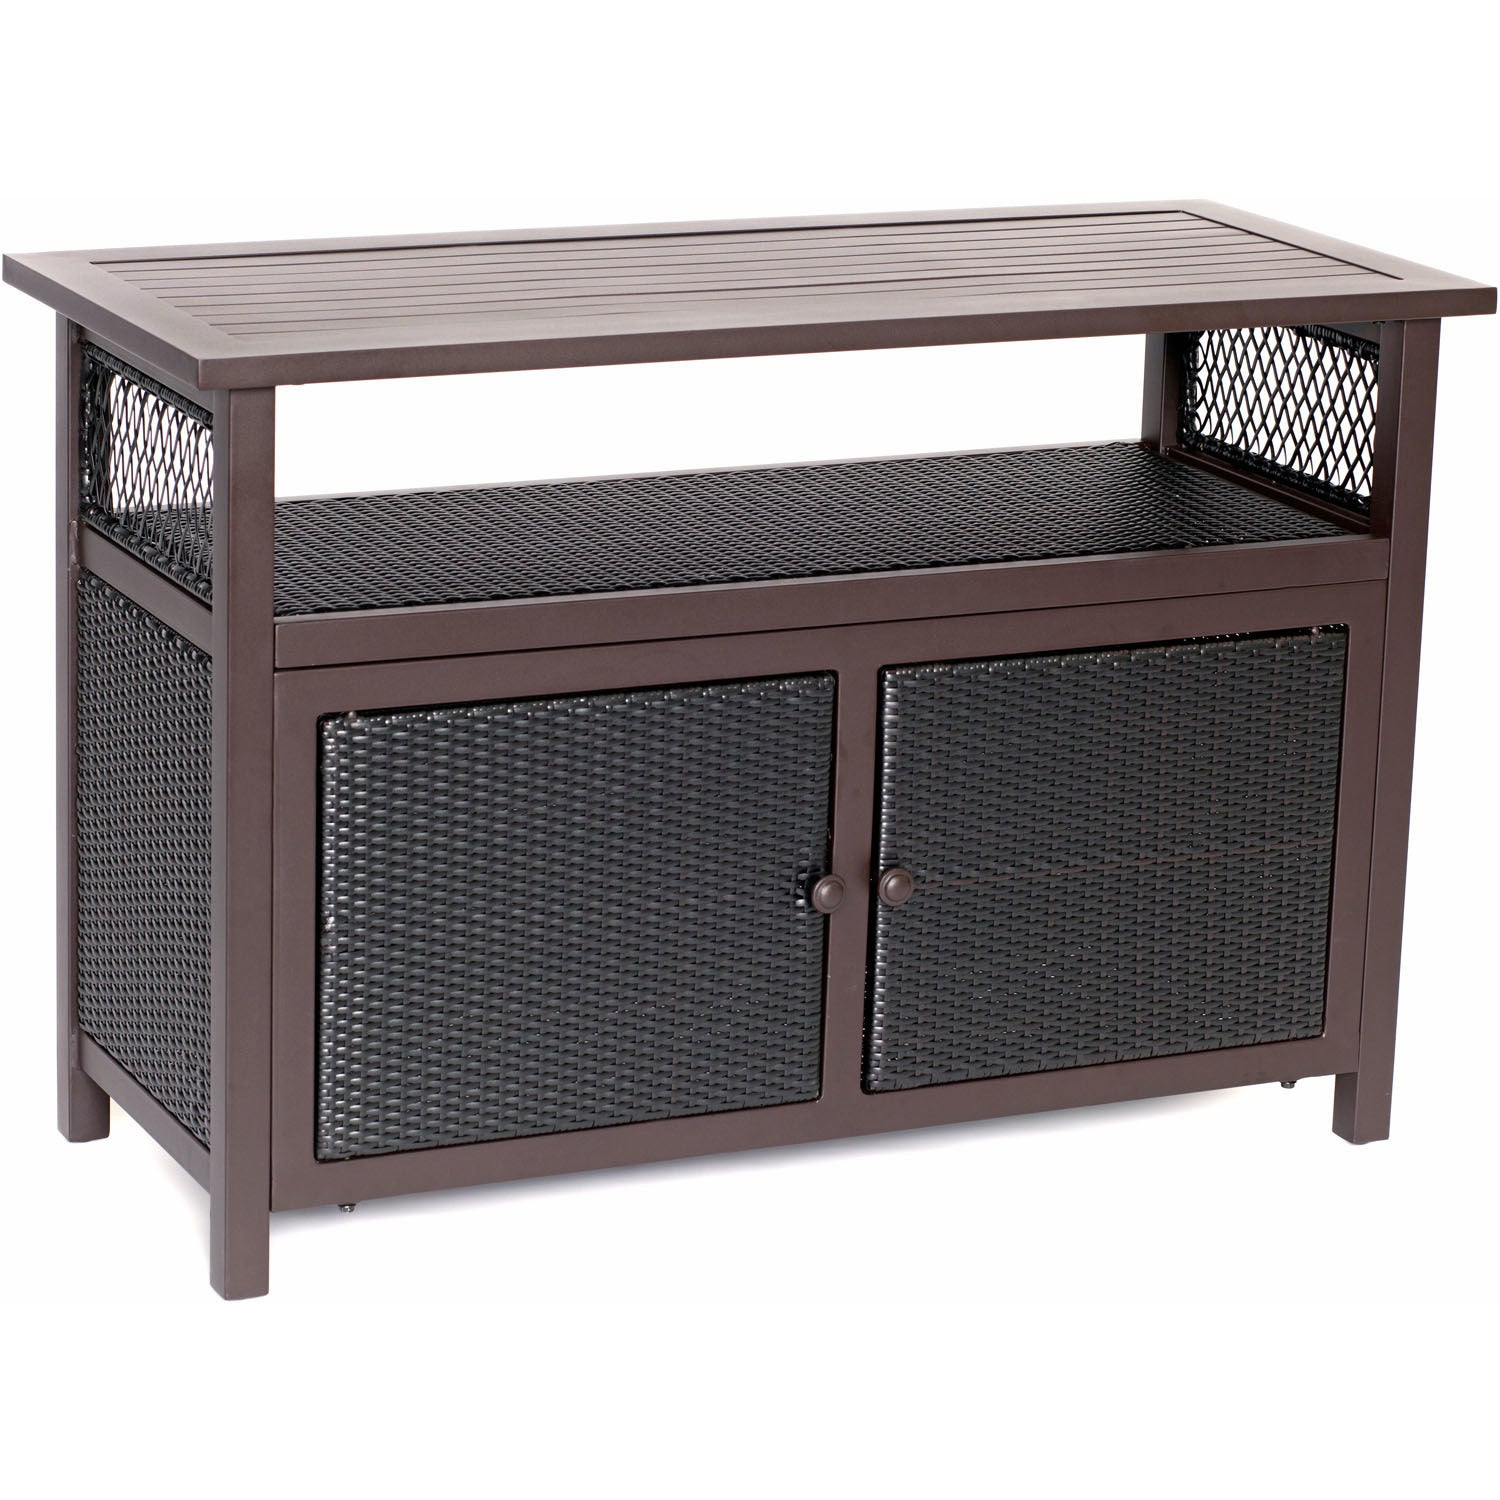 Best Of Better Homes and Gardens Tv Stand